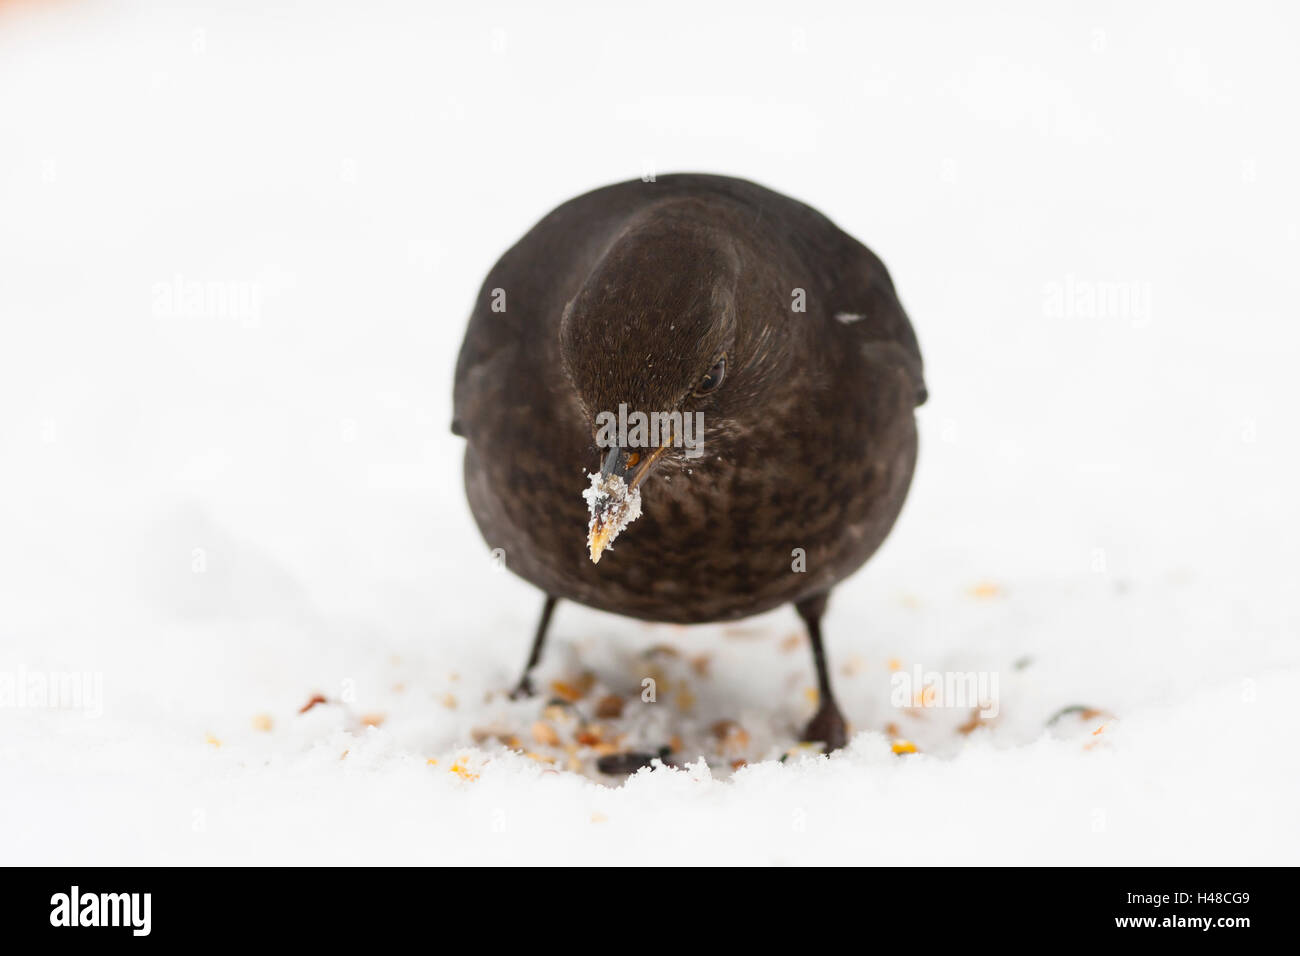 blackbird female in snow with ice on bill - Stock Image